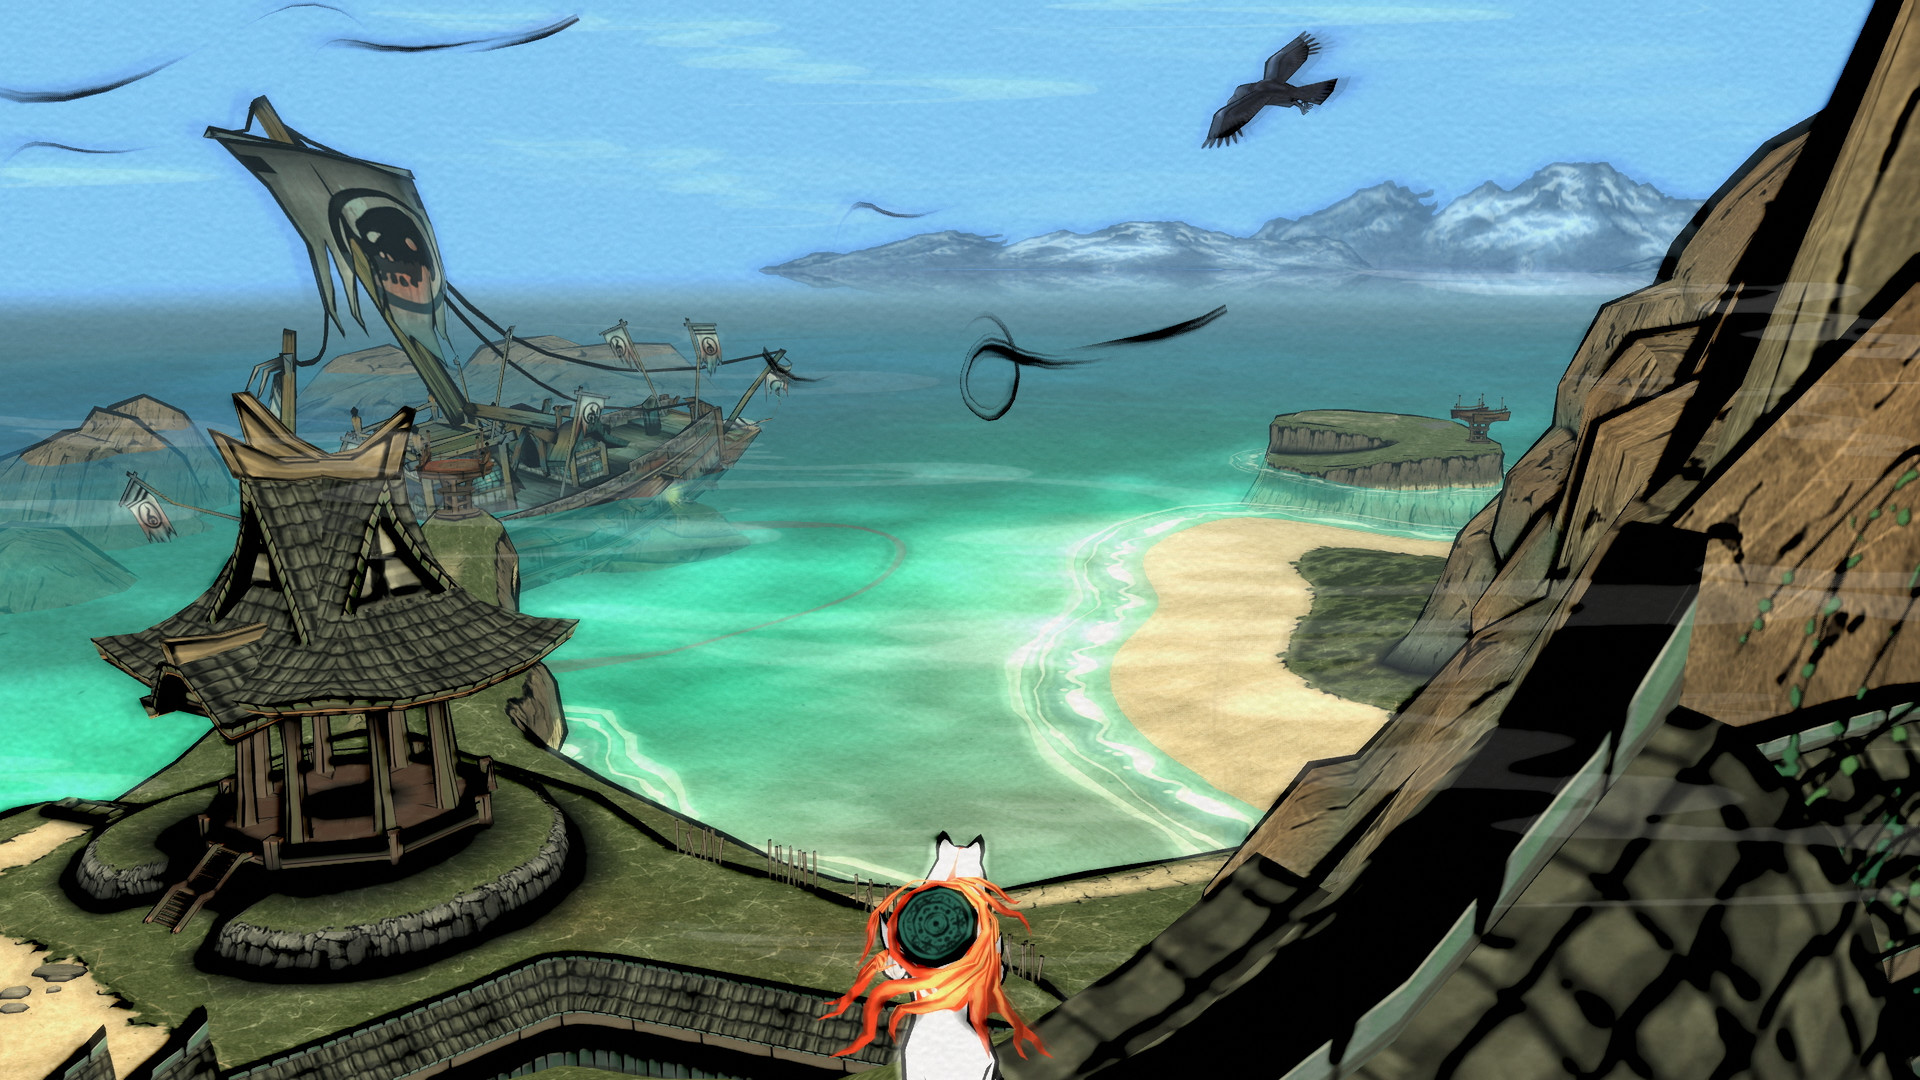 OKAMI HD / 大神 絶景版 [Steam\RegionFree\Key] + Подарок